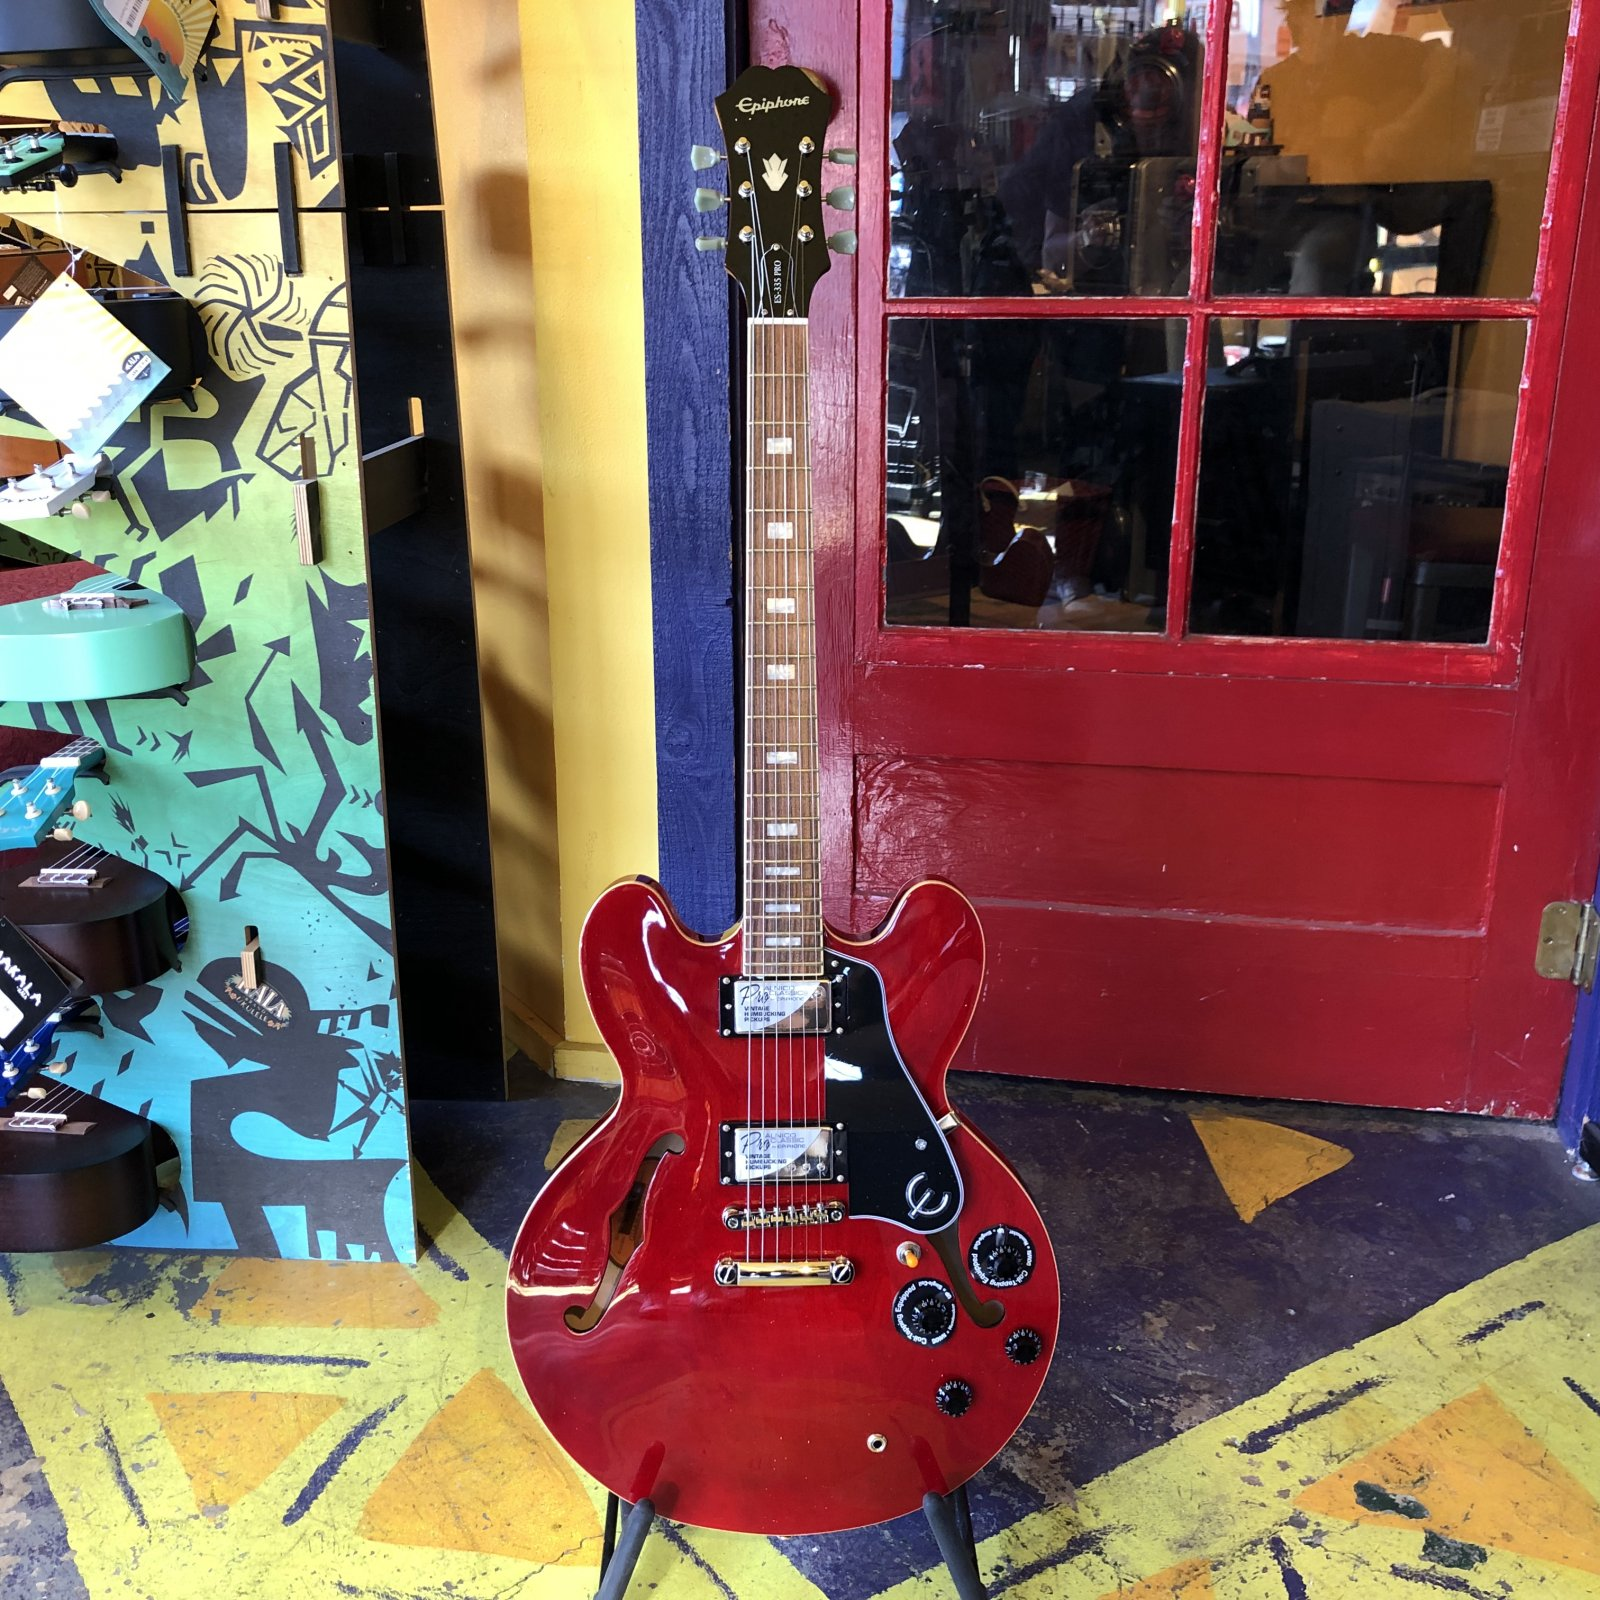 Epiphone ES335 Pro Semi-Hollow Electric